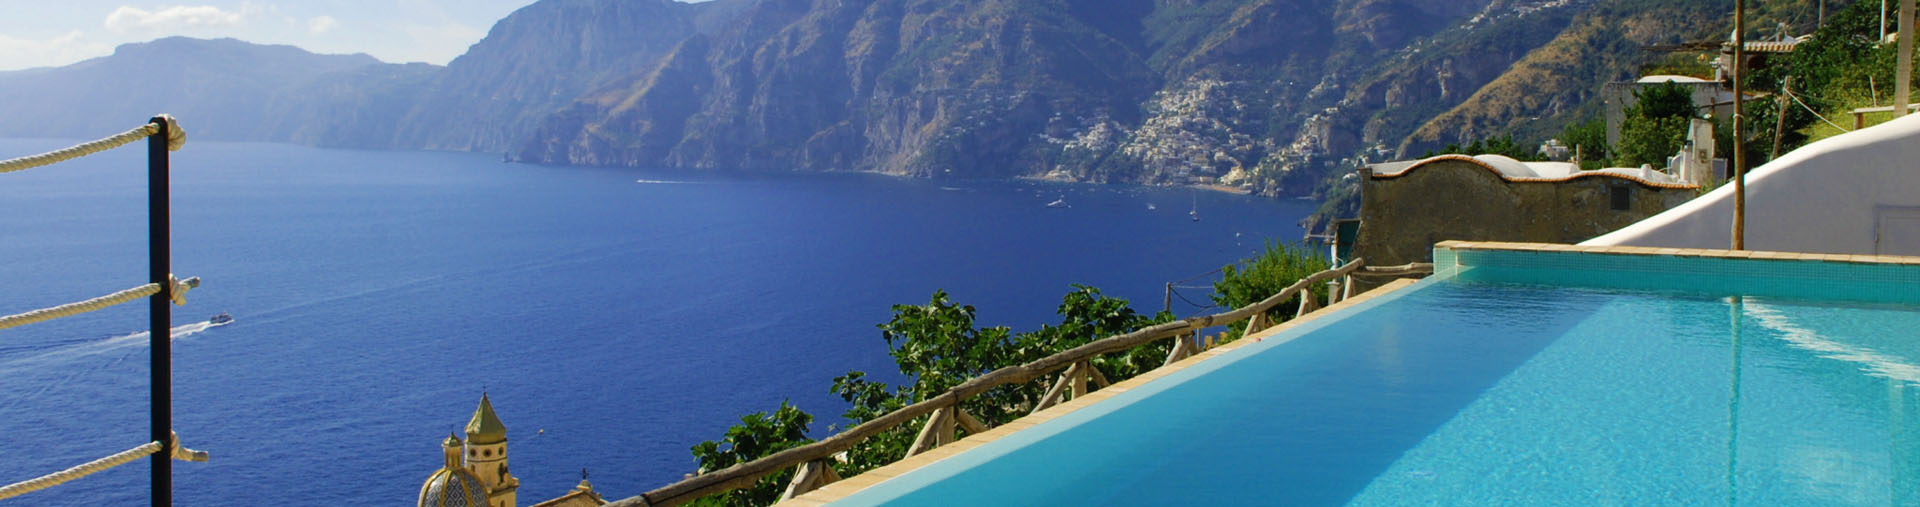 Villa il Glicine, Amalfi Coast|Villa with an incredible view overlooking the sea and the typical landscape of Amalfi